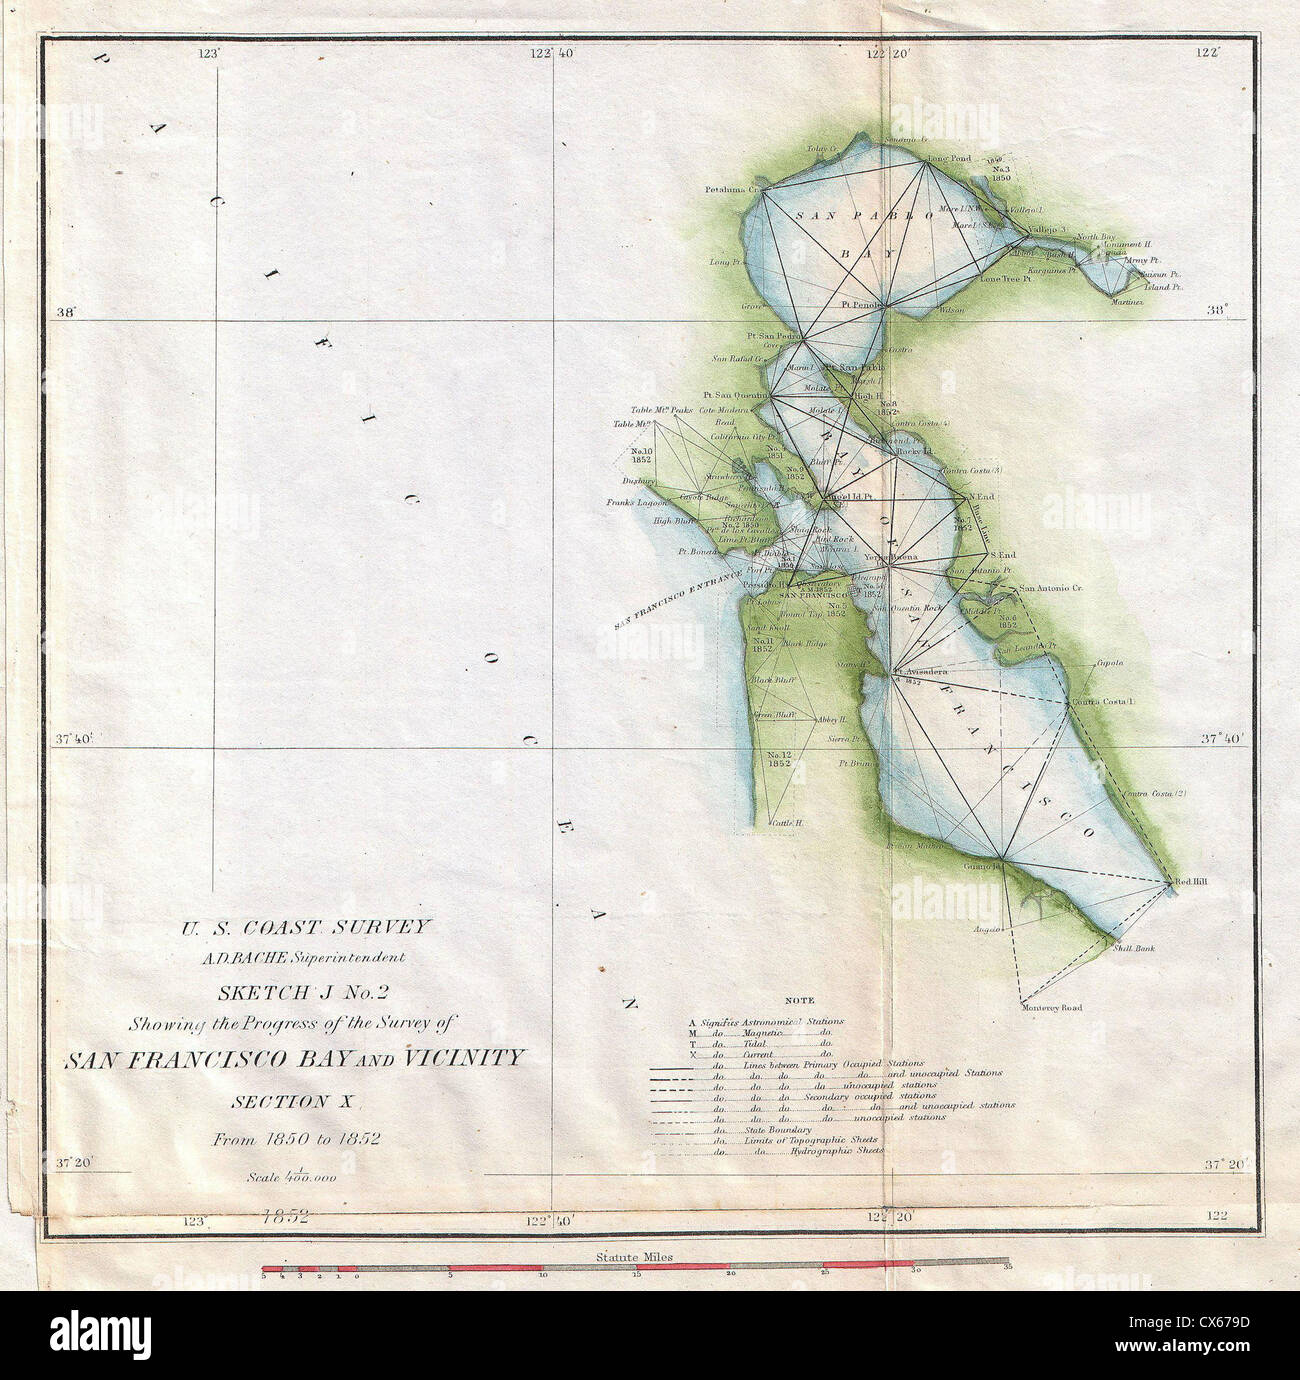 1853 u s coast survey map of san francisco bay california